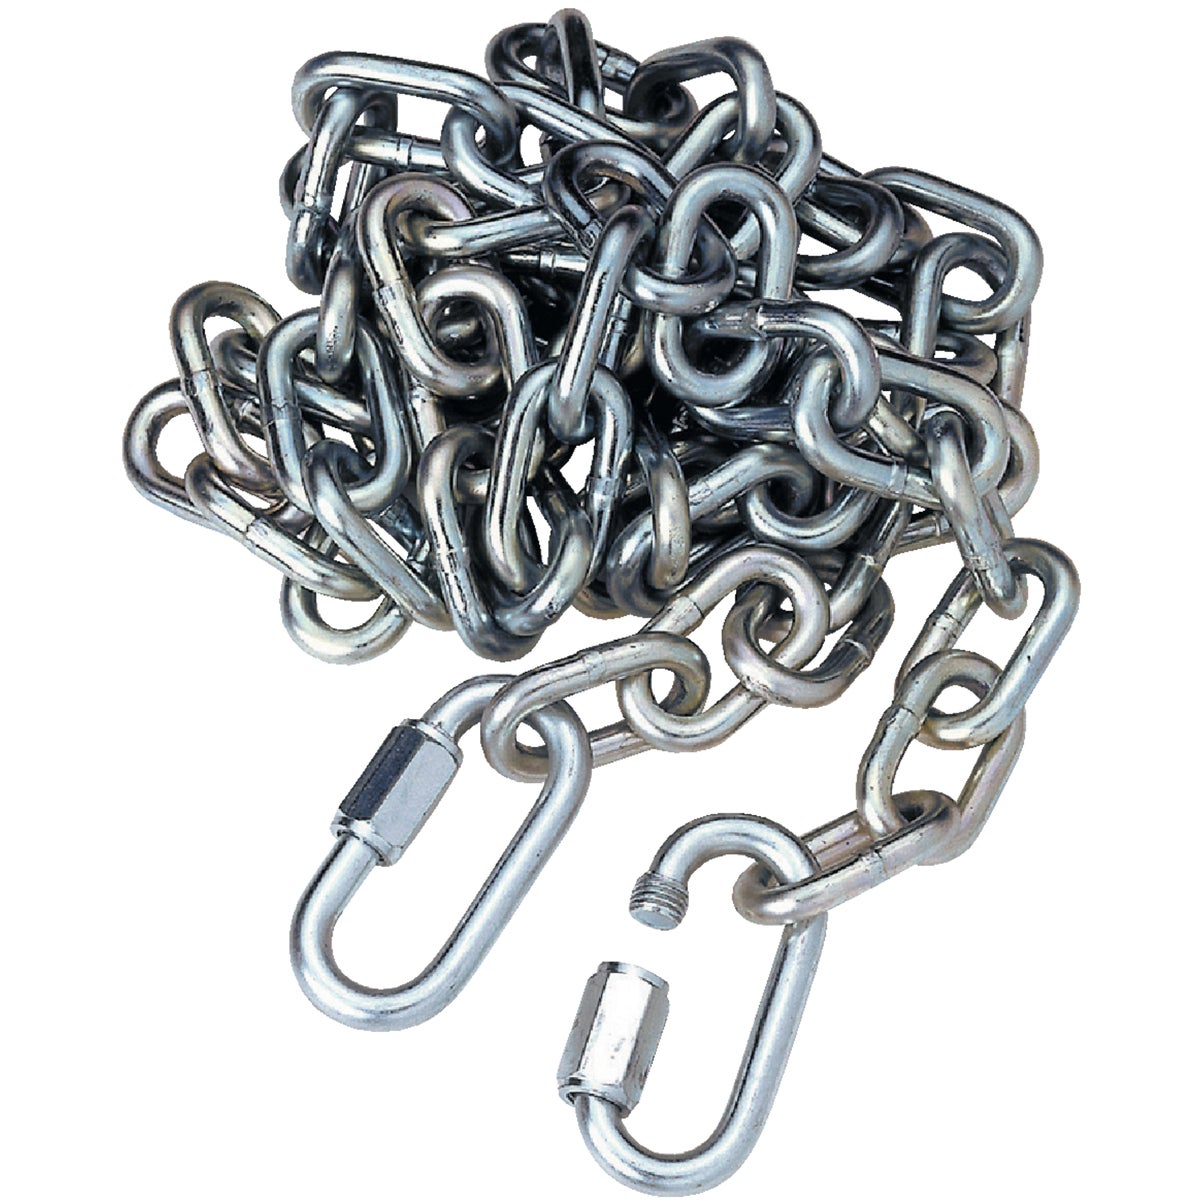 5000Lb Safety Chain